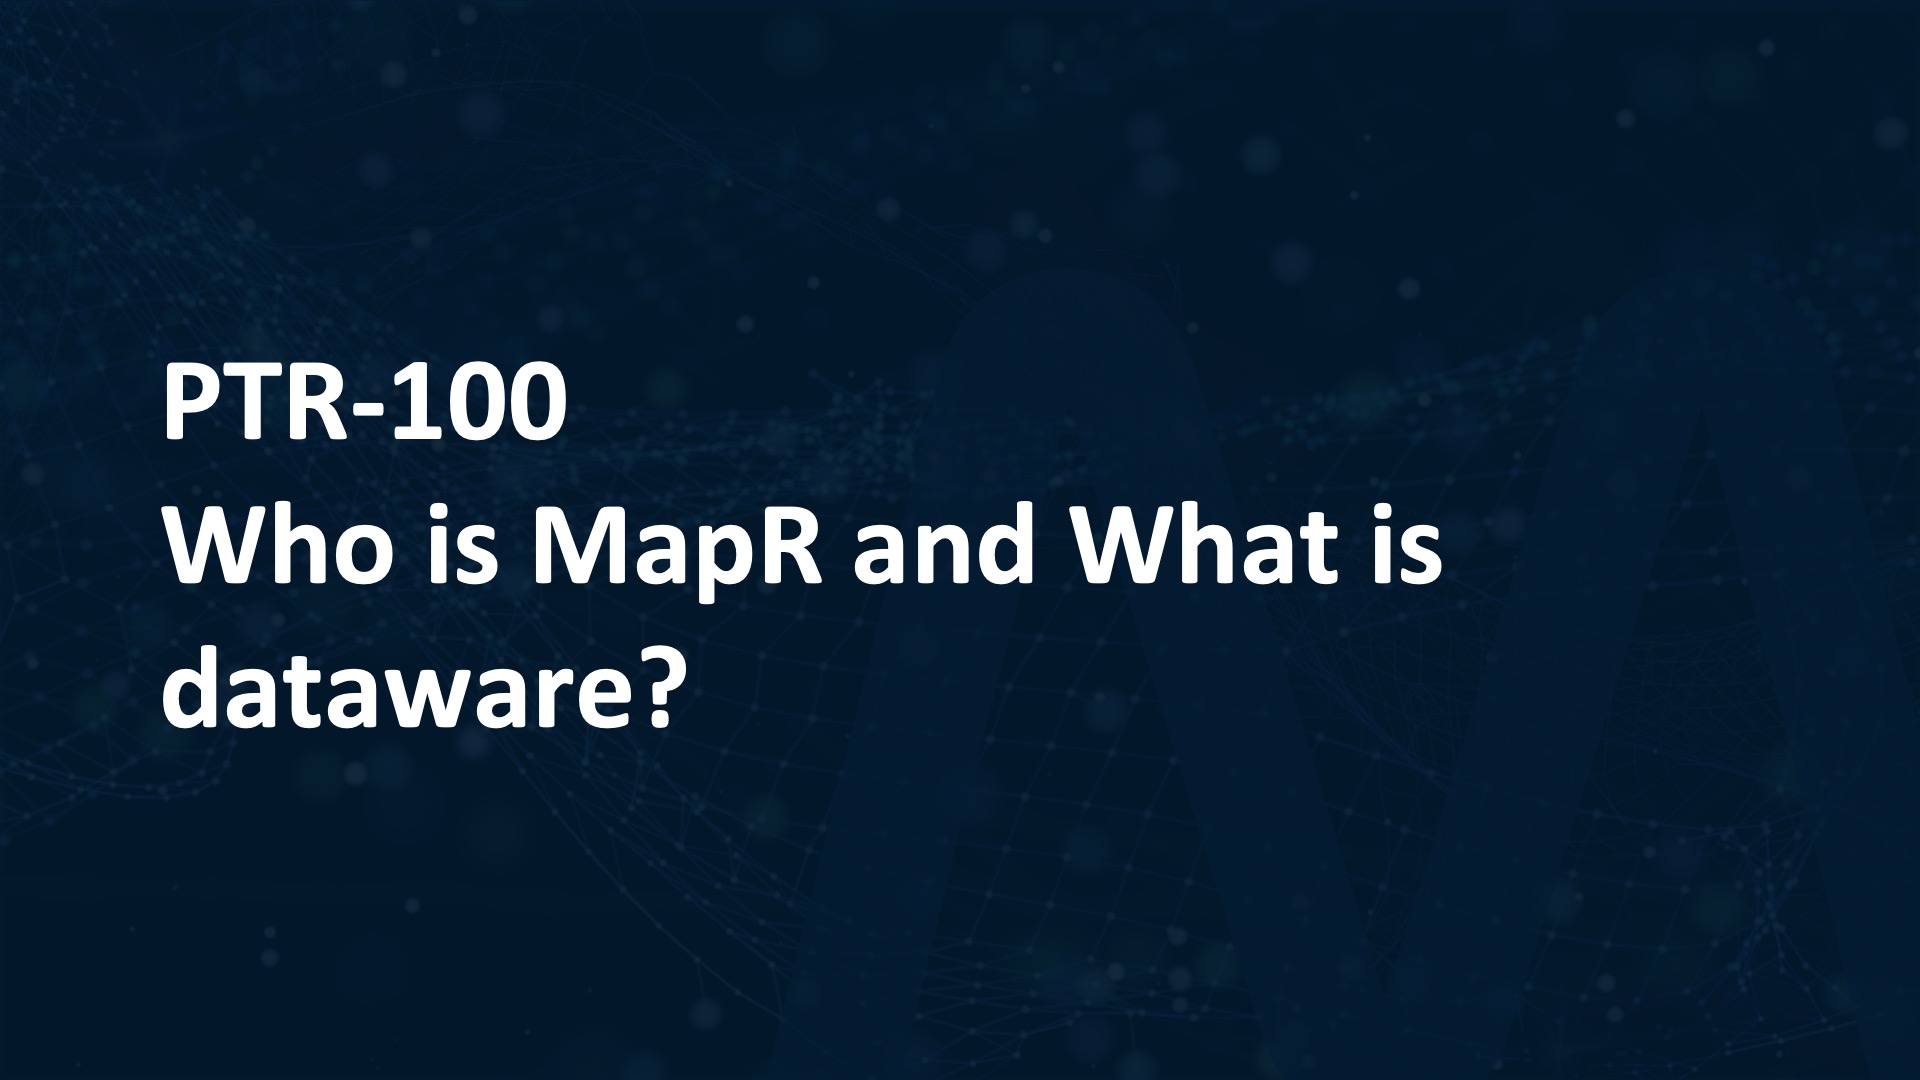 Who is MapR and what is Dataware?